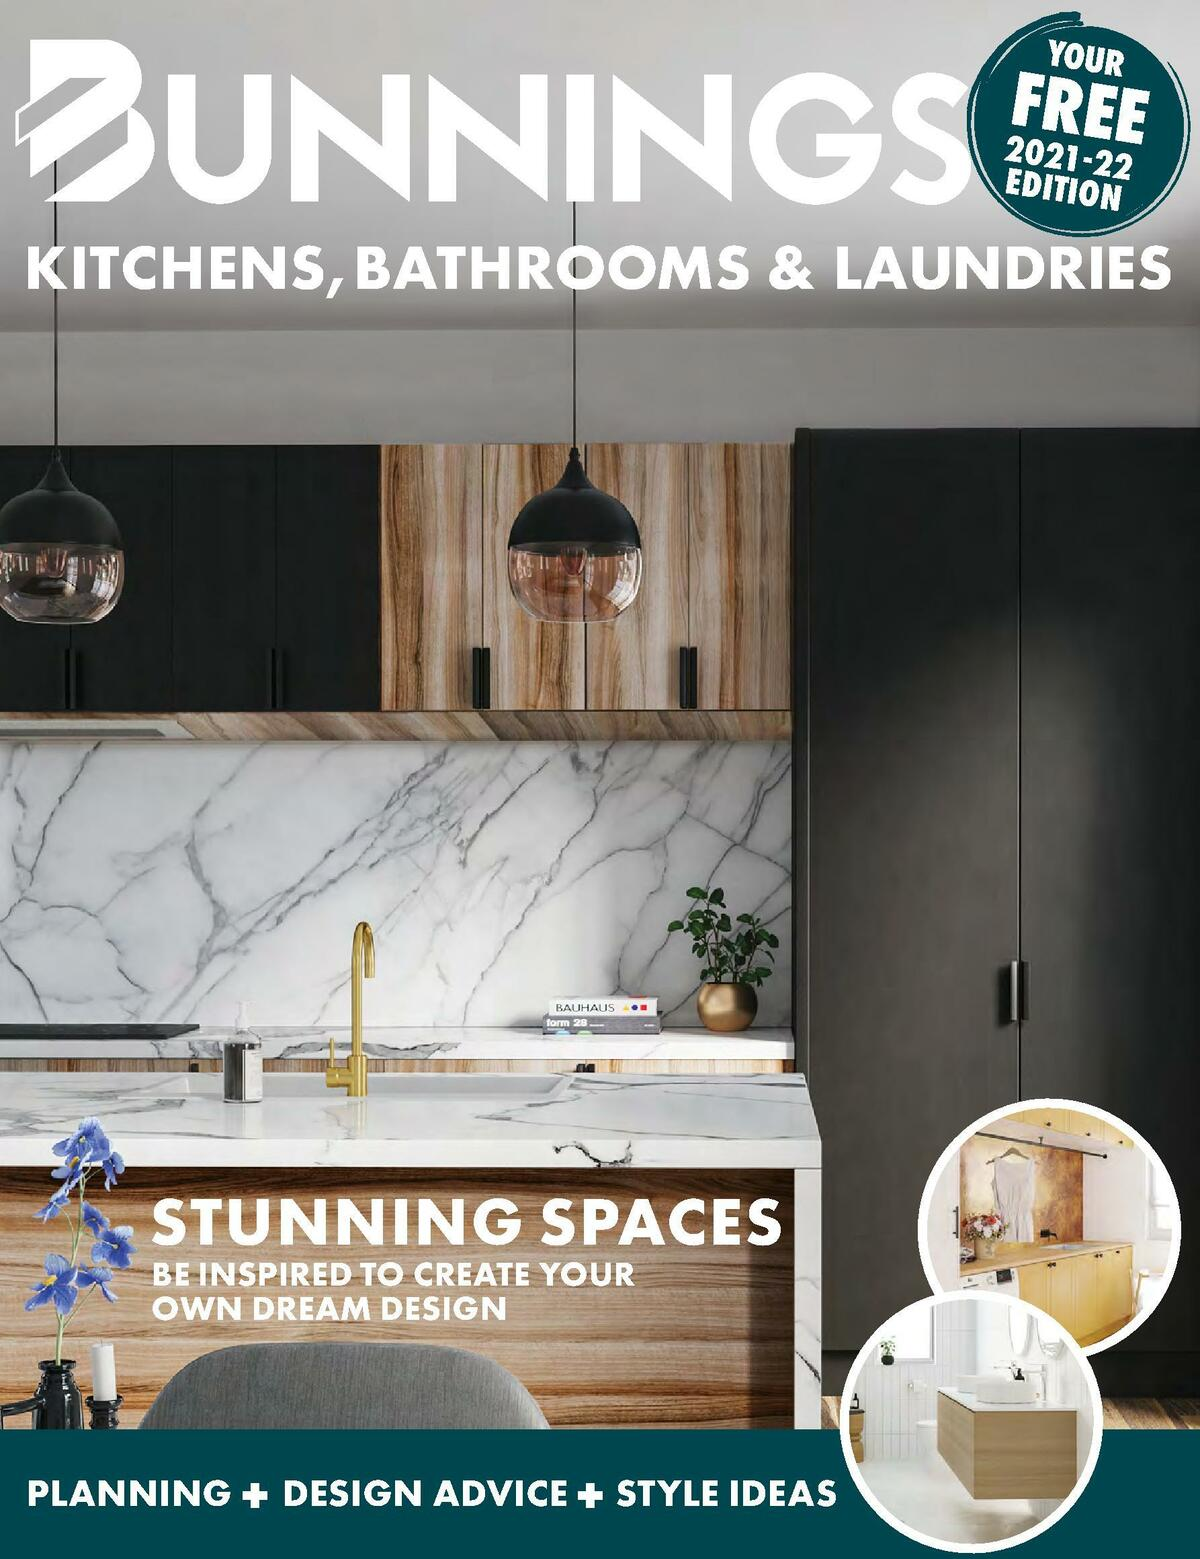 Bunnings Warehouse Kitchens, Bathrooms and Laundries 2021-22 Catalogues from July 1